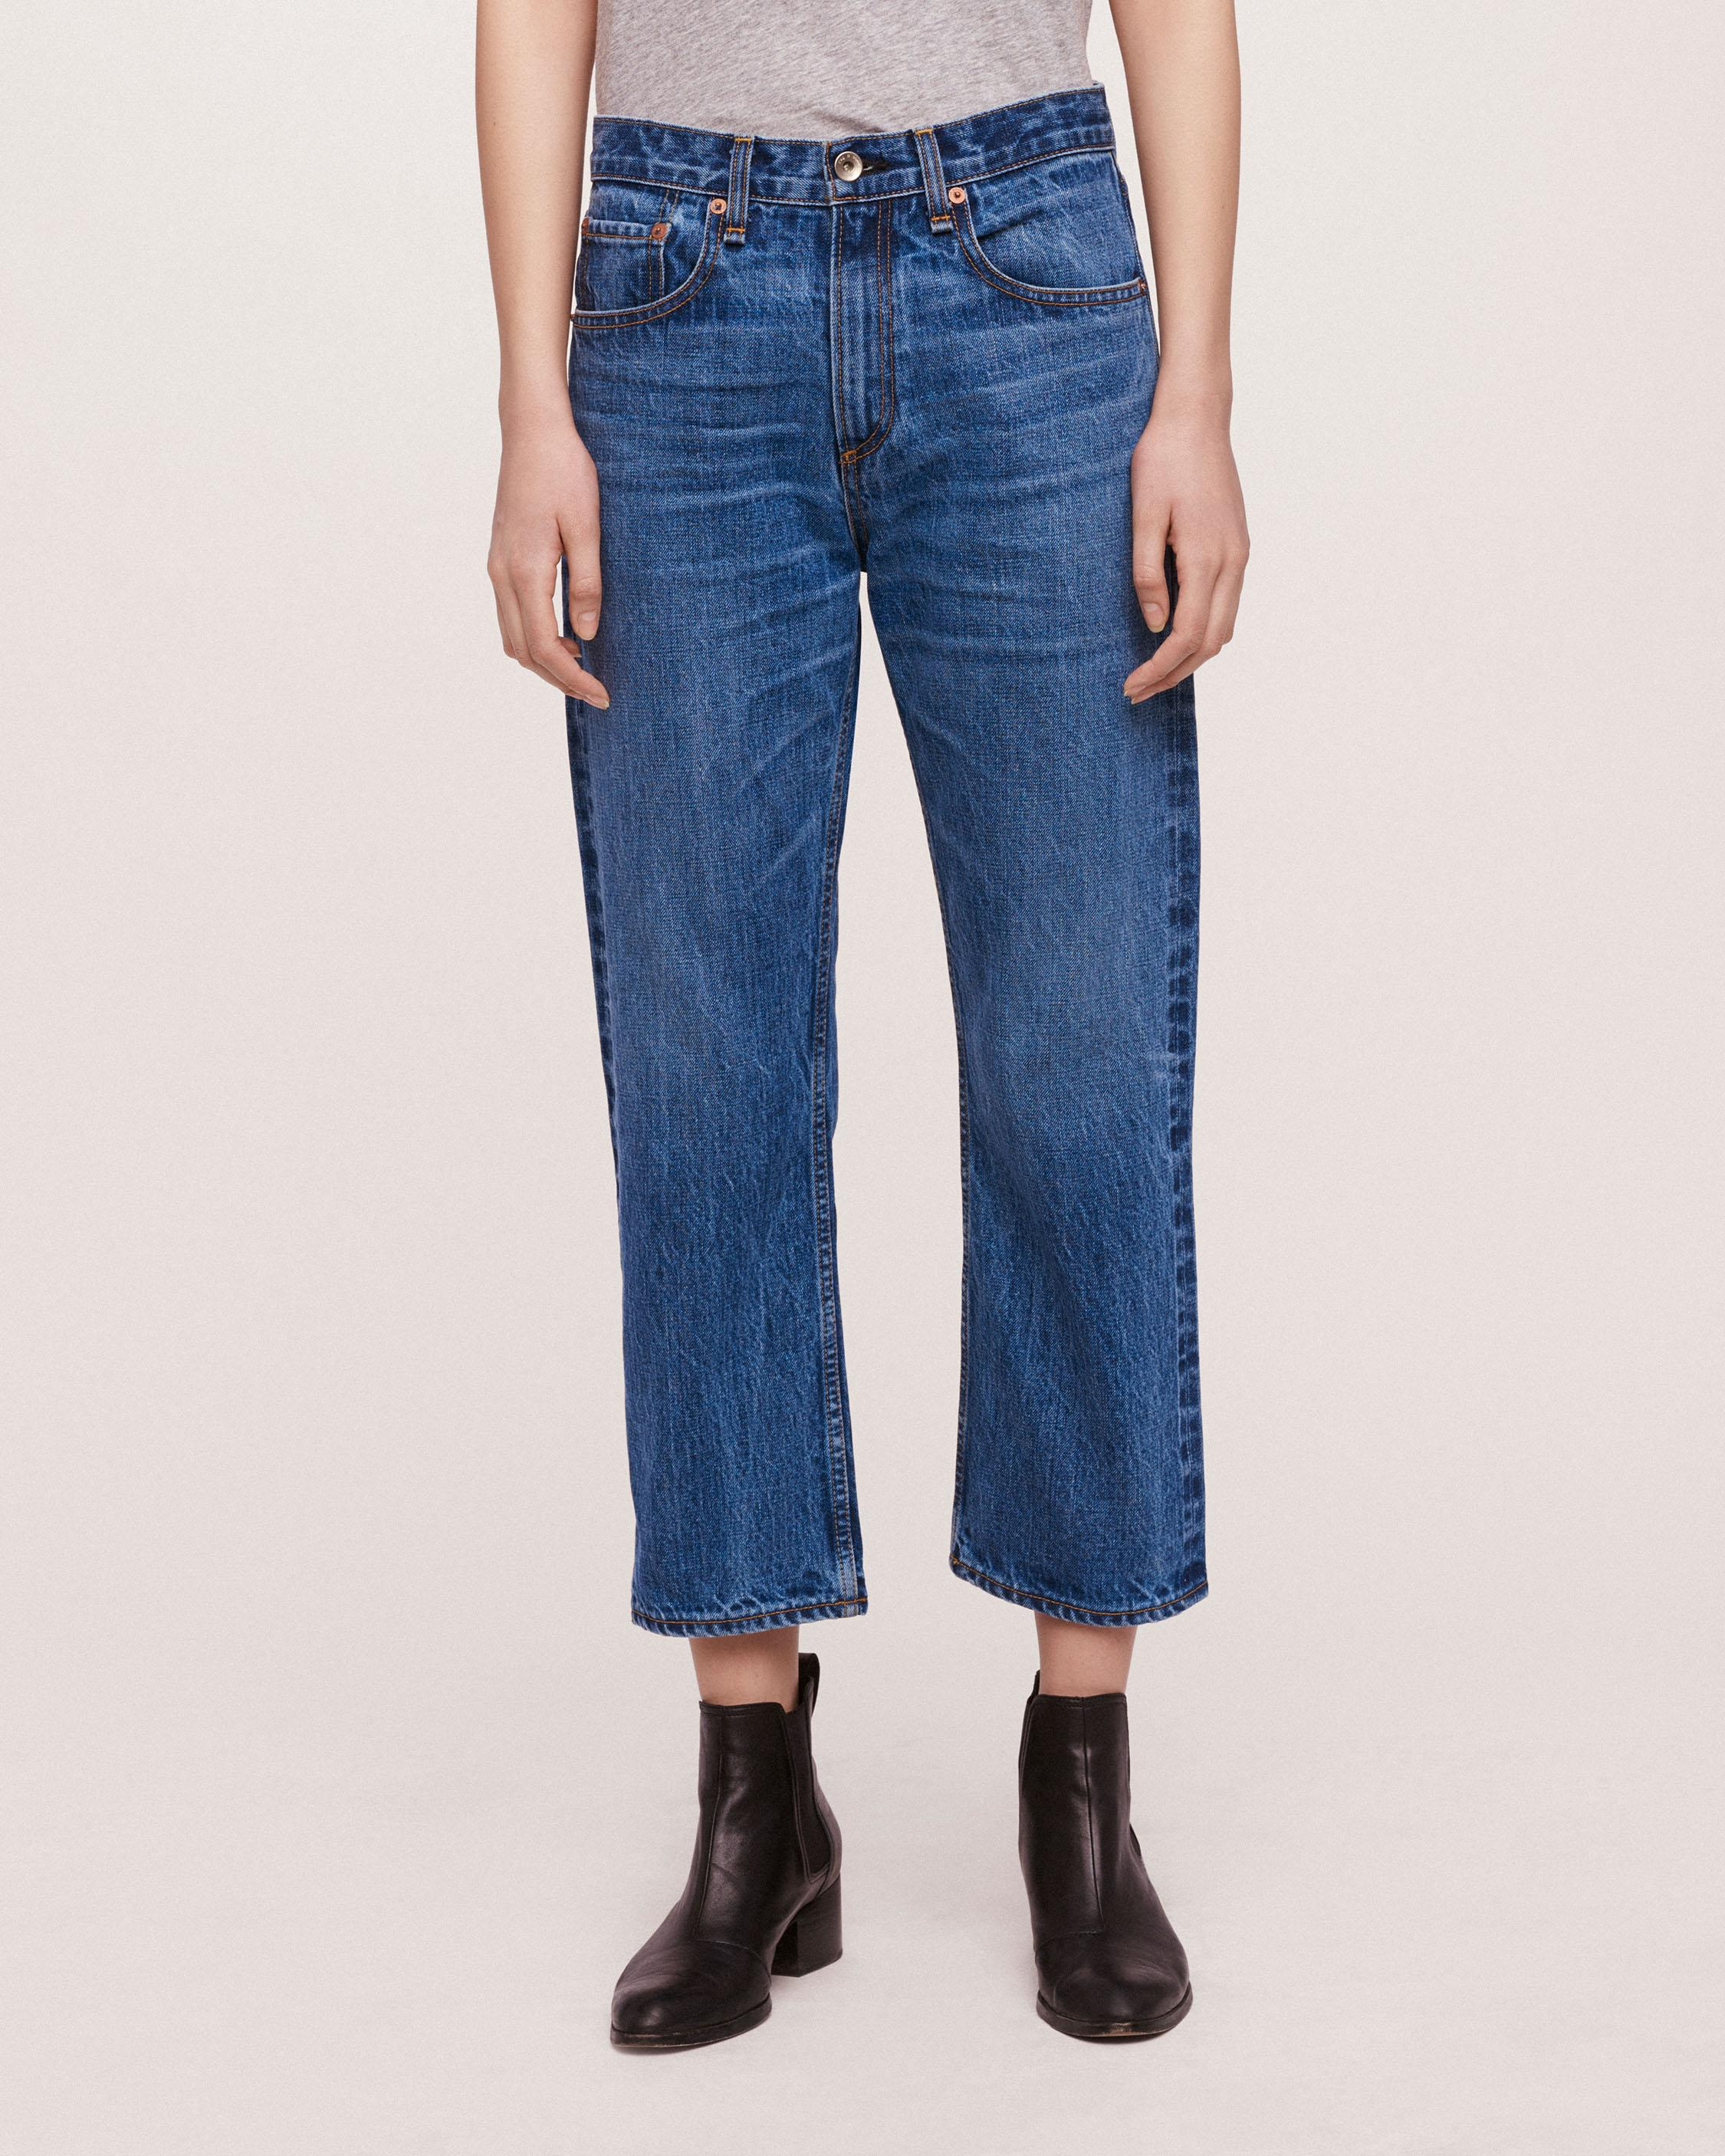 Womens Jeans Marilyn Jeans H.I.S fVRyYdi